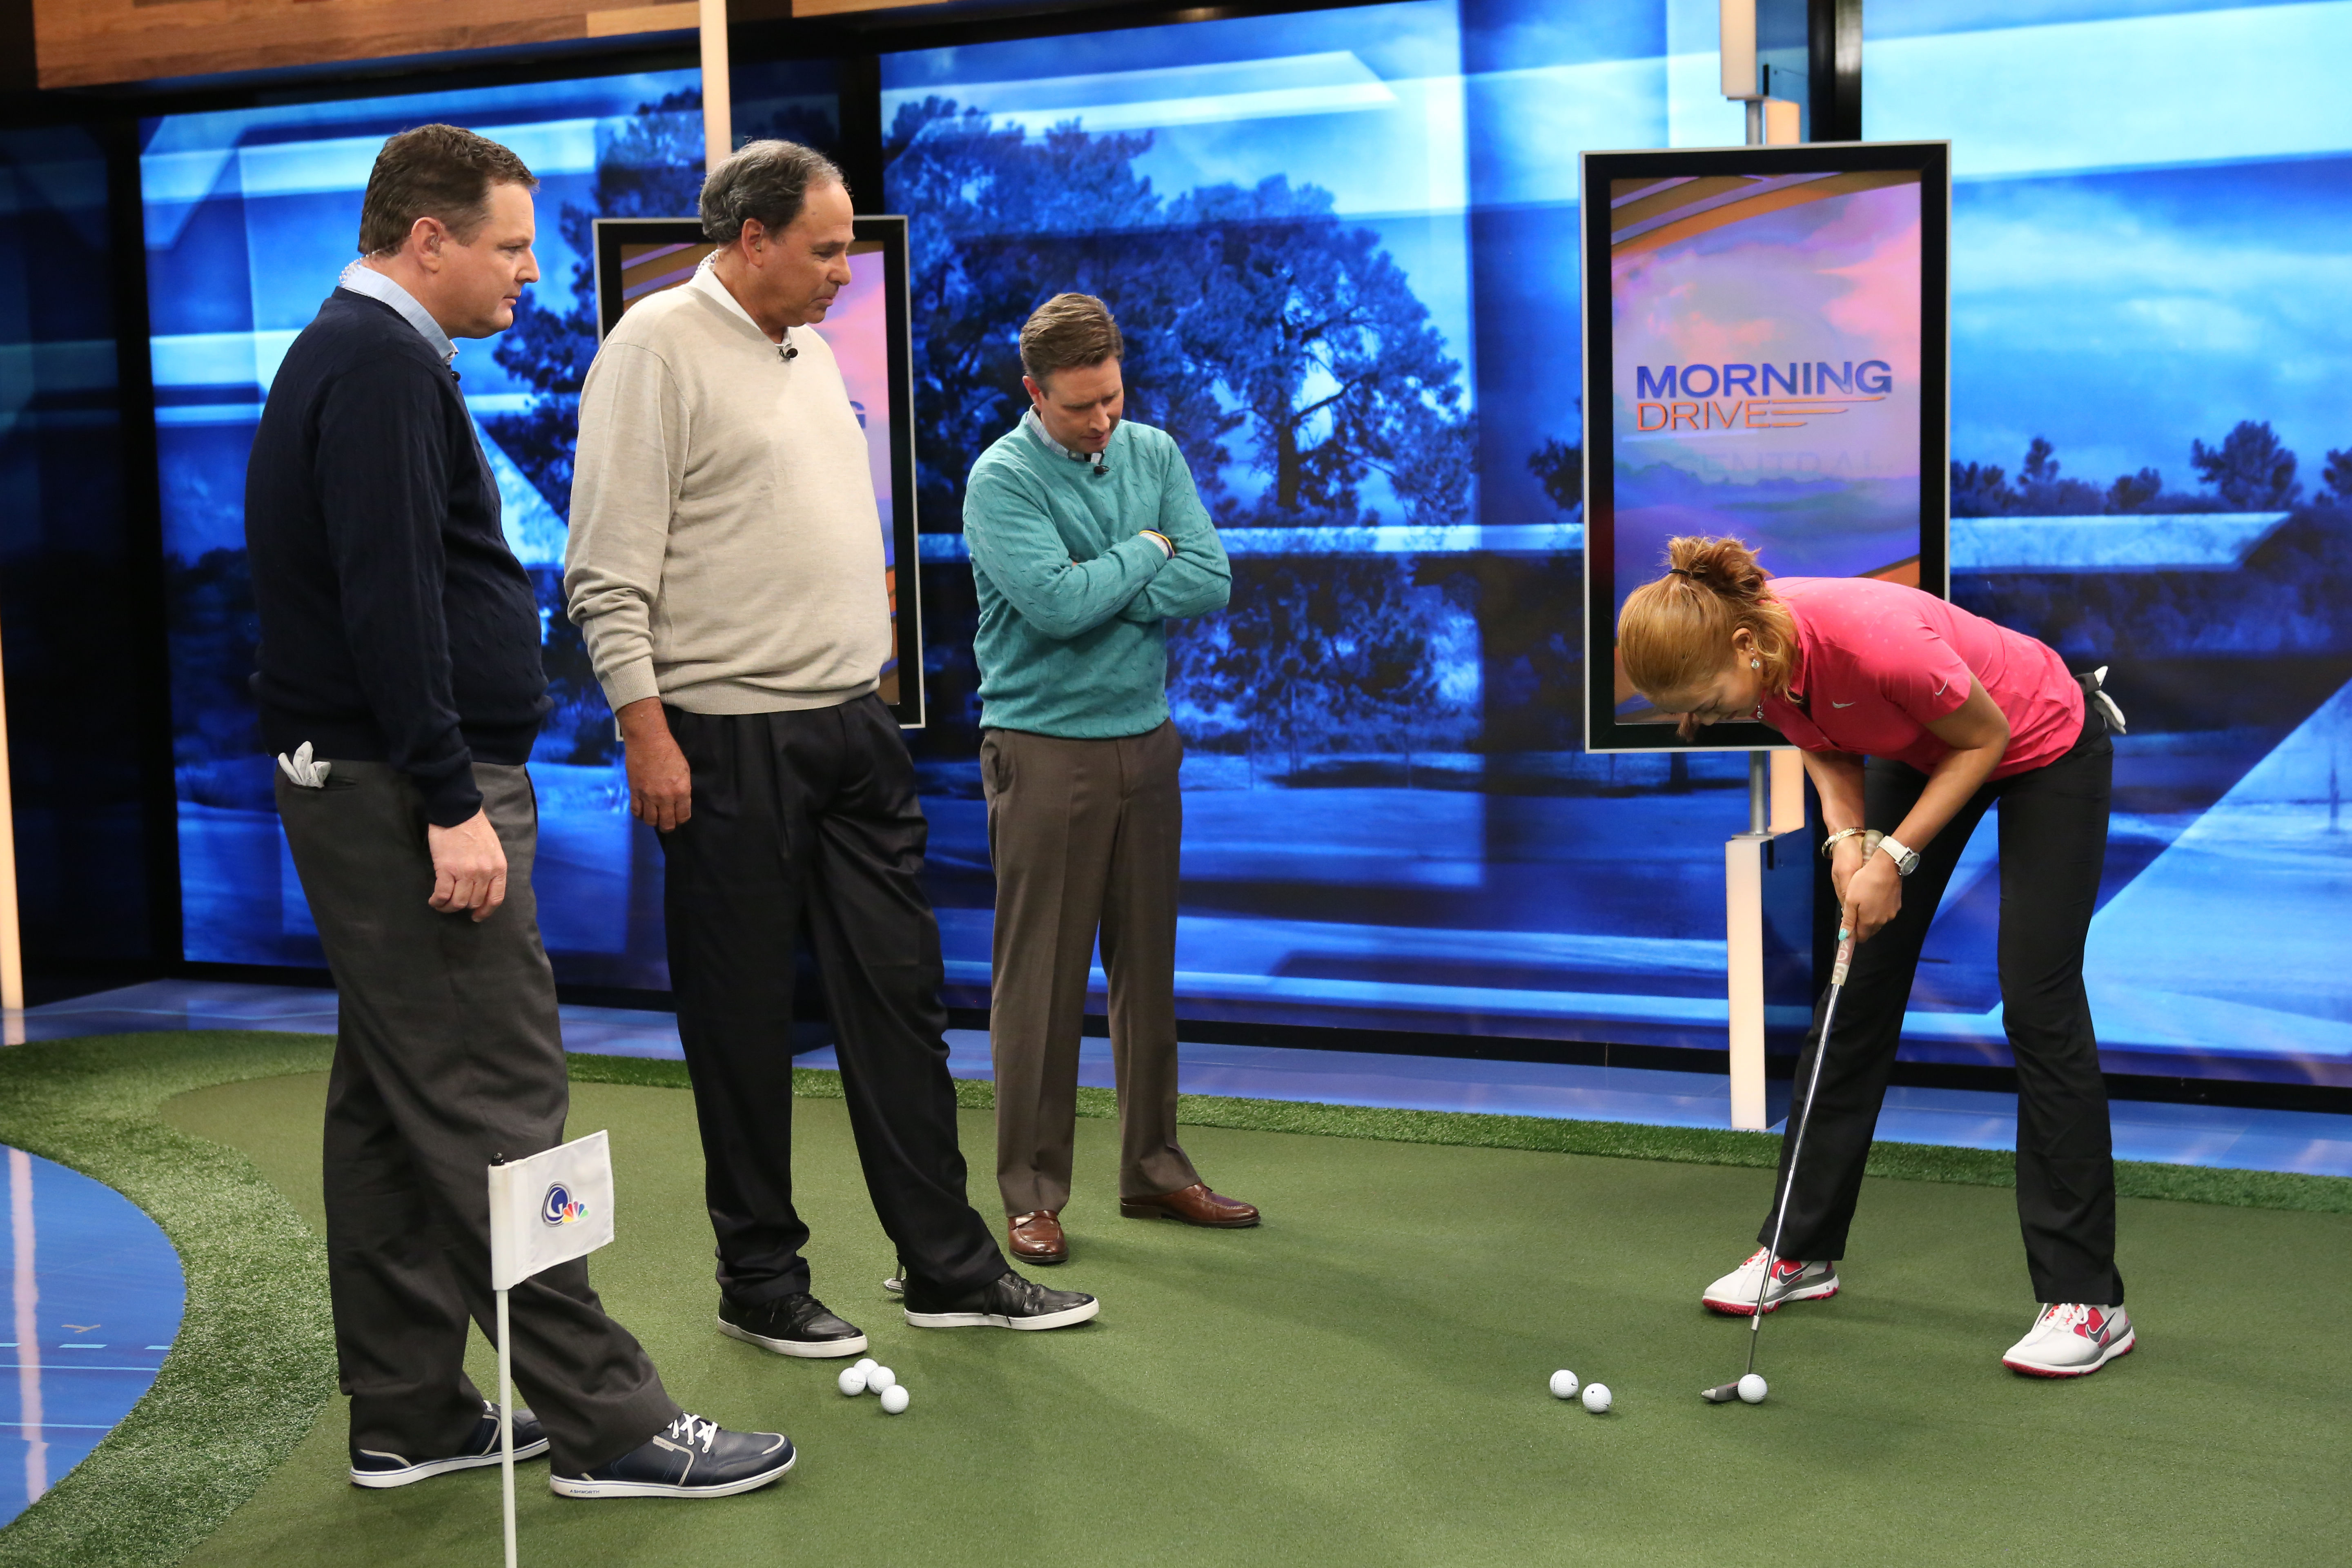 Michelle Wie (right) shows off her putting stroke to Charlie Rymer, Phil Blackmar and Gary Williams during Golf Channel's Morning Drive on Thursday.